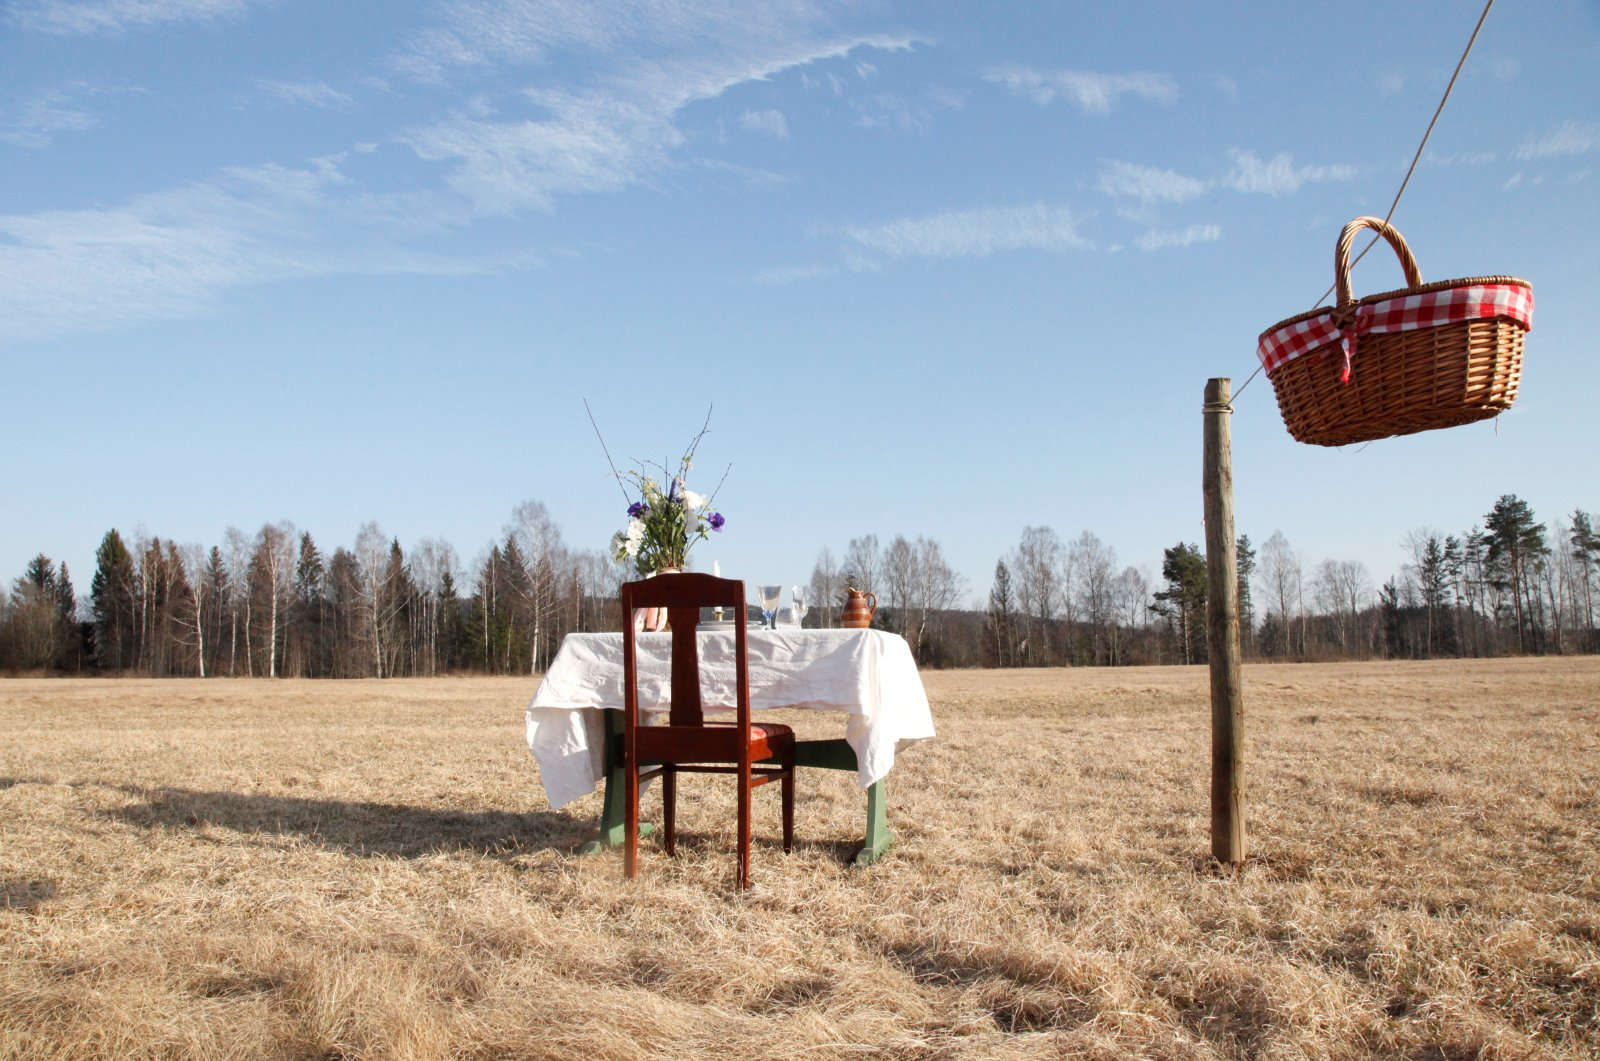 A Swedish couple has opened a COVID-19-safe pop-up restaurant in a meadow with one chair and one table in Umlautus, Ransater, Sweden, March 26, 2020. (Reuters Photo)